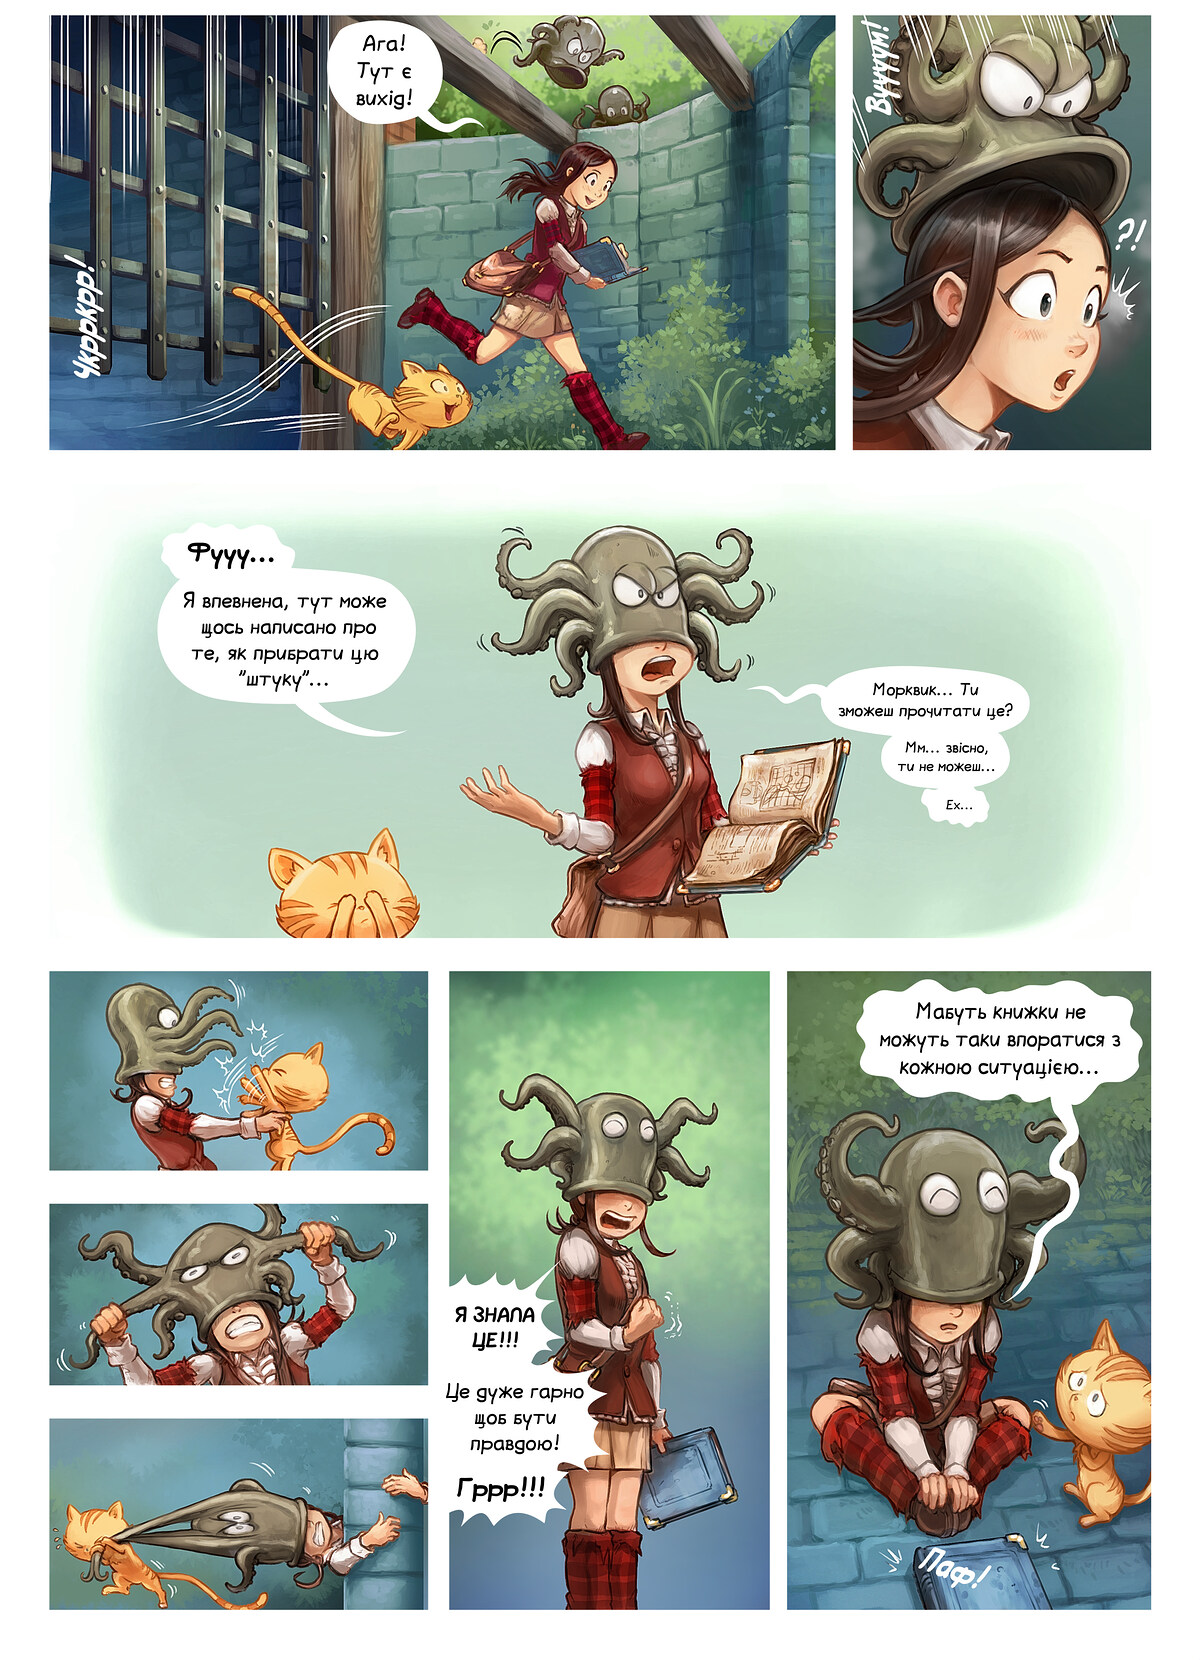 A webcomic page of Pepper&Carrot, епізод 26 [uk], стор. 5